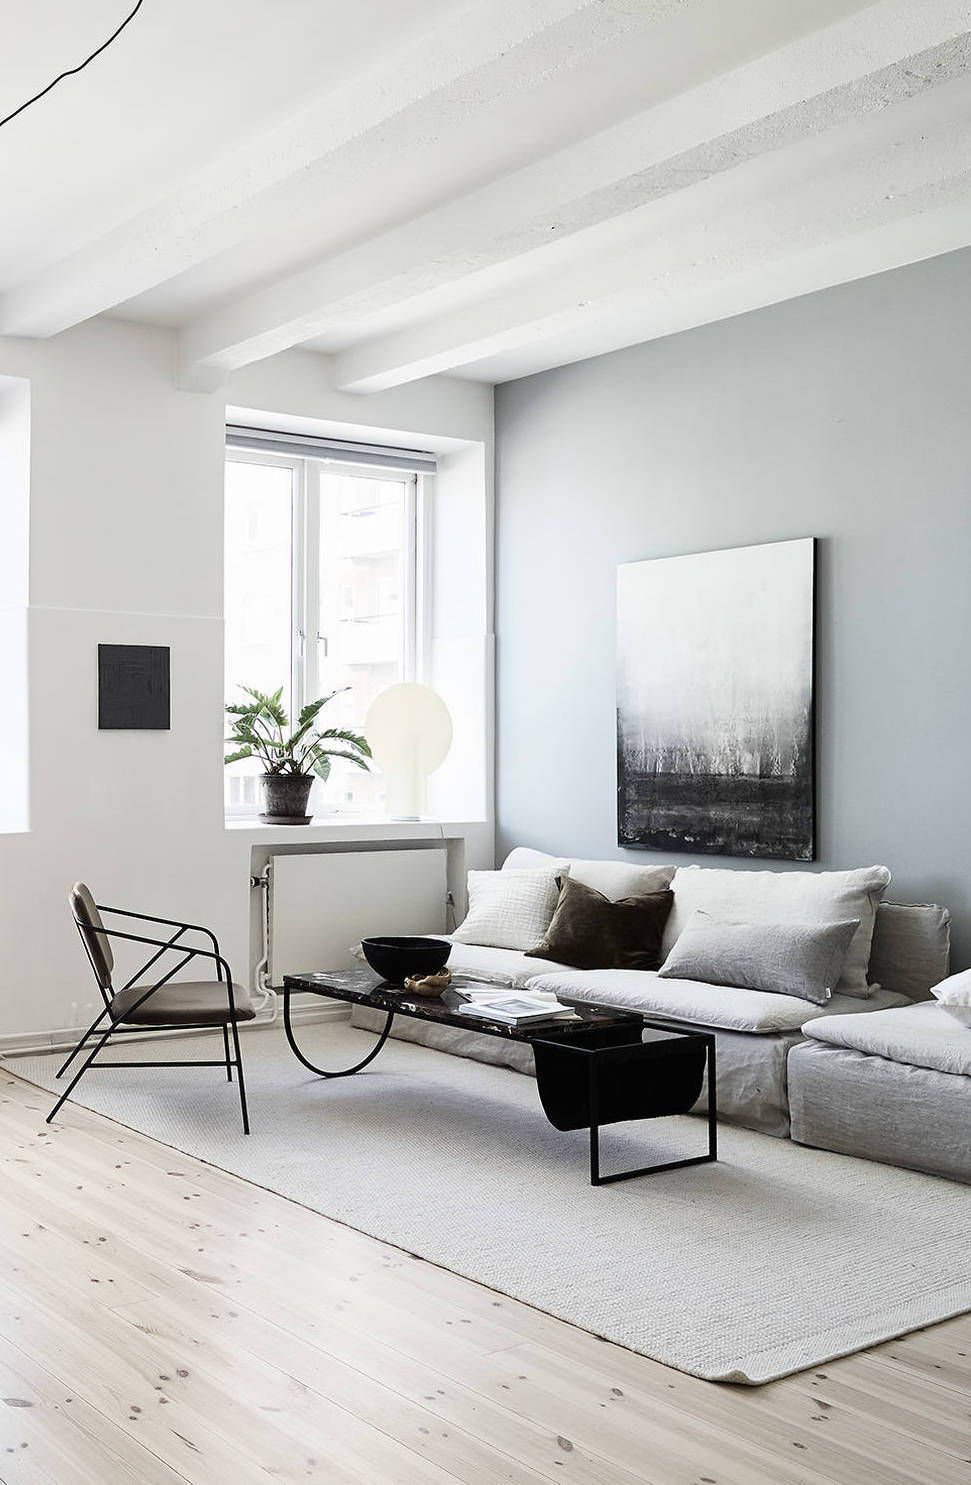 Home With Blue Grey Accents With Images Minimalist Living Room